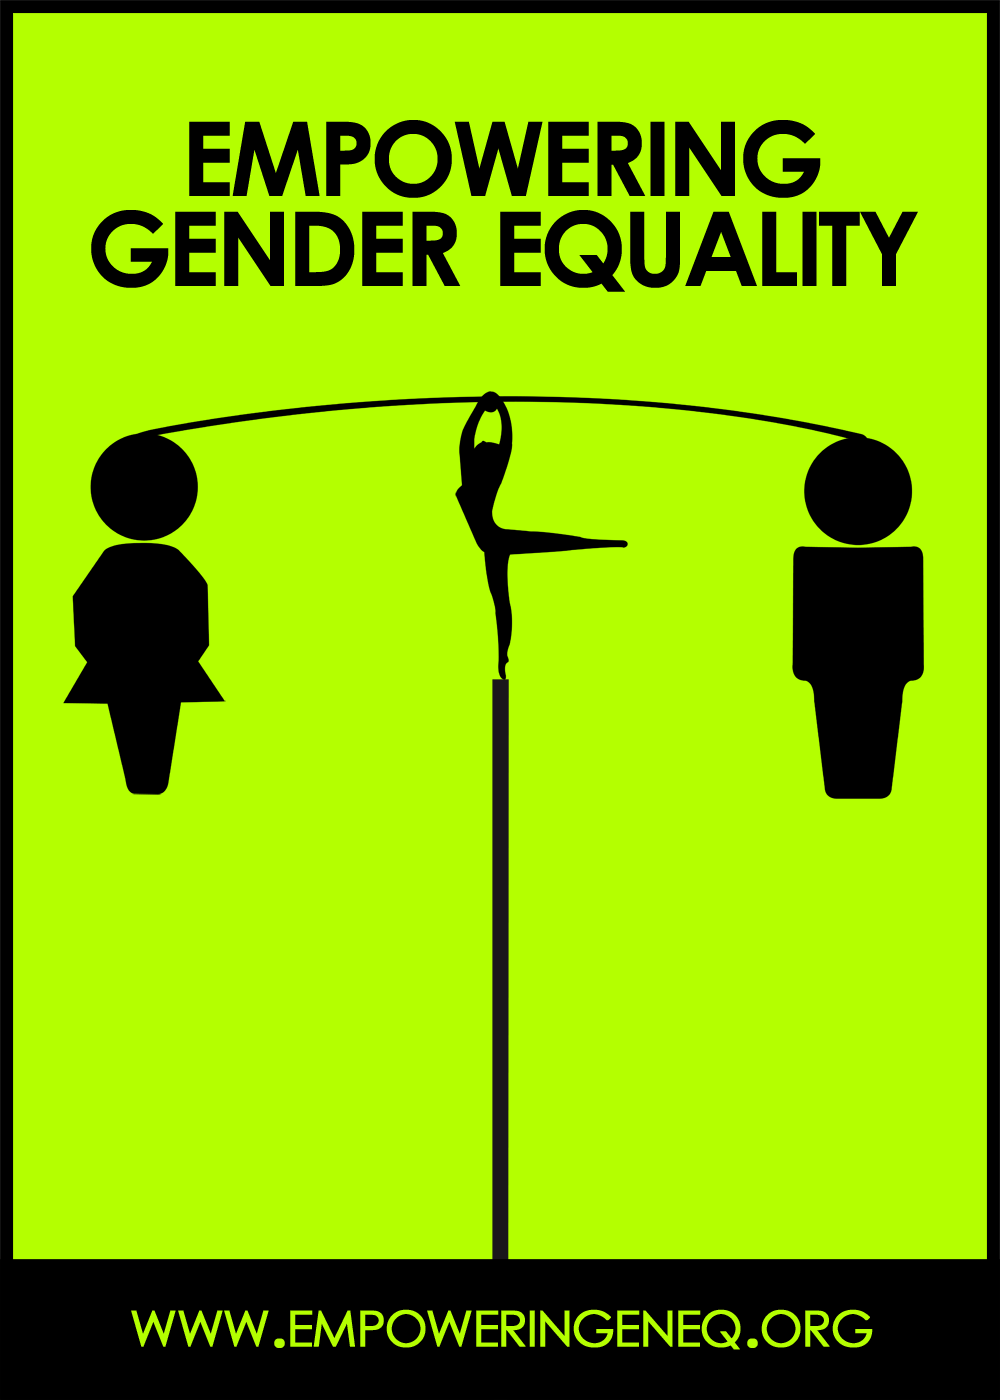 positive discrimination and gender equality Gender equality refers to the practice of fairness and justice in the distribution of benefits, access and control of resources, responsibilities, power, opportunities and services.